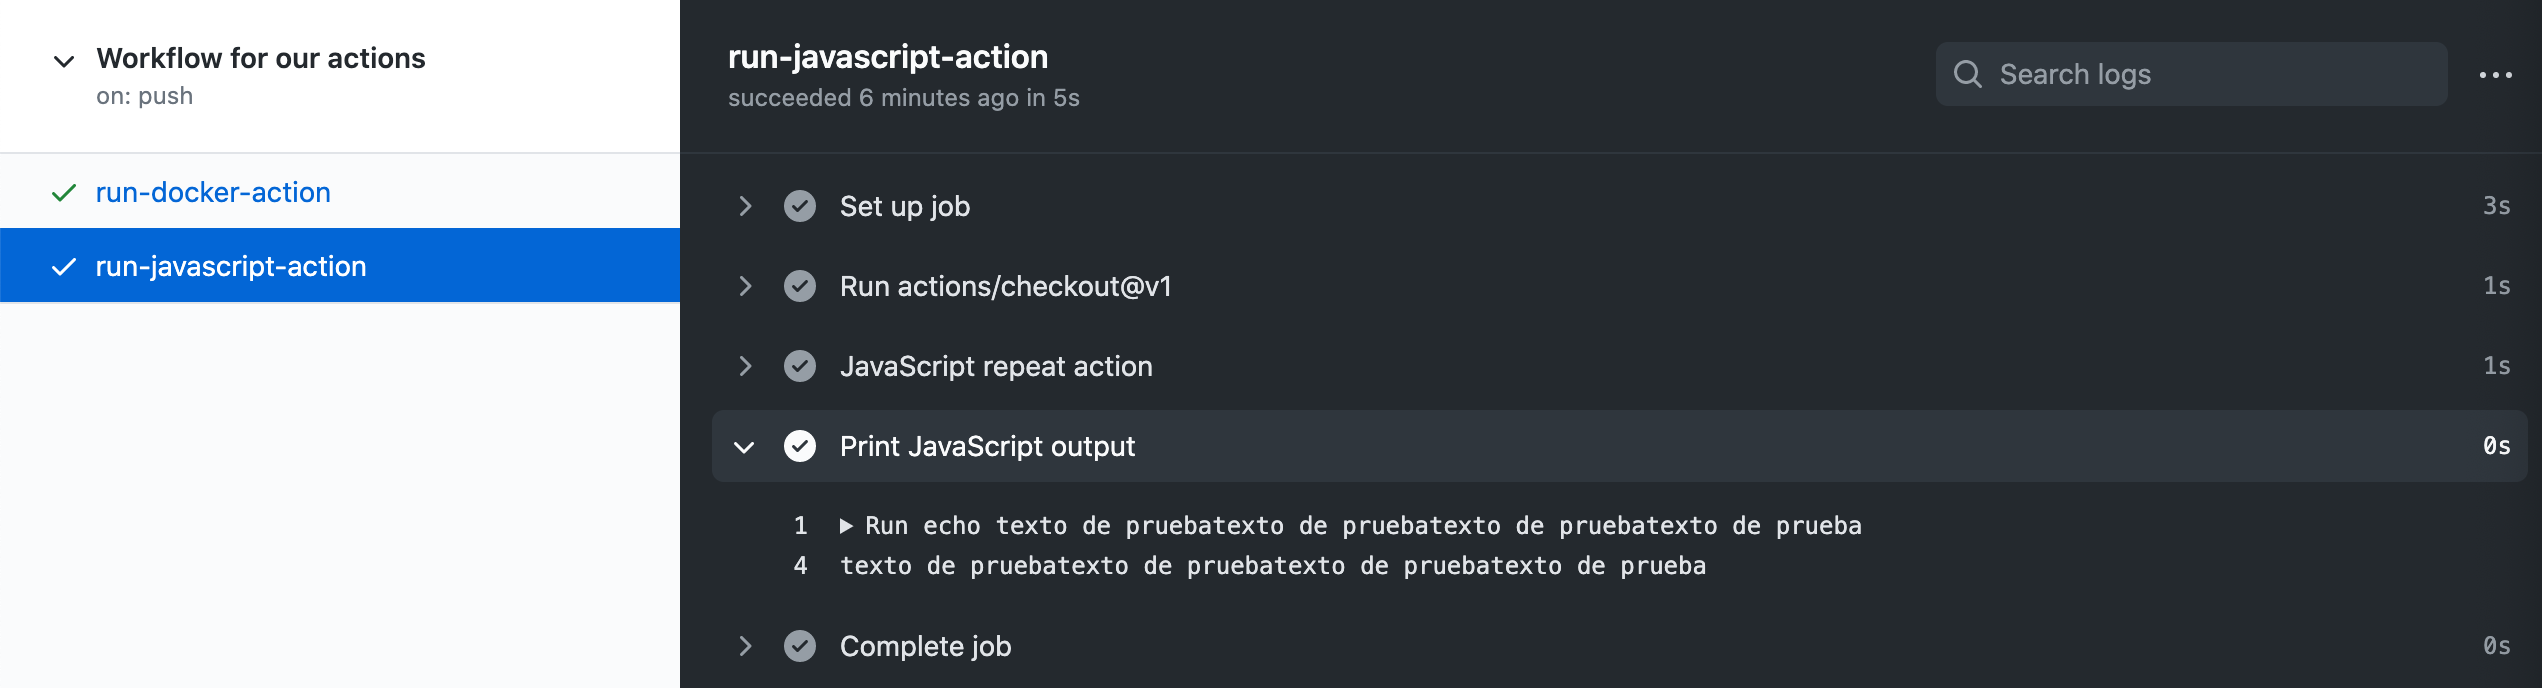 captura acción consola javascript